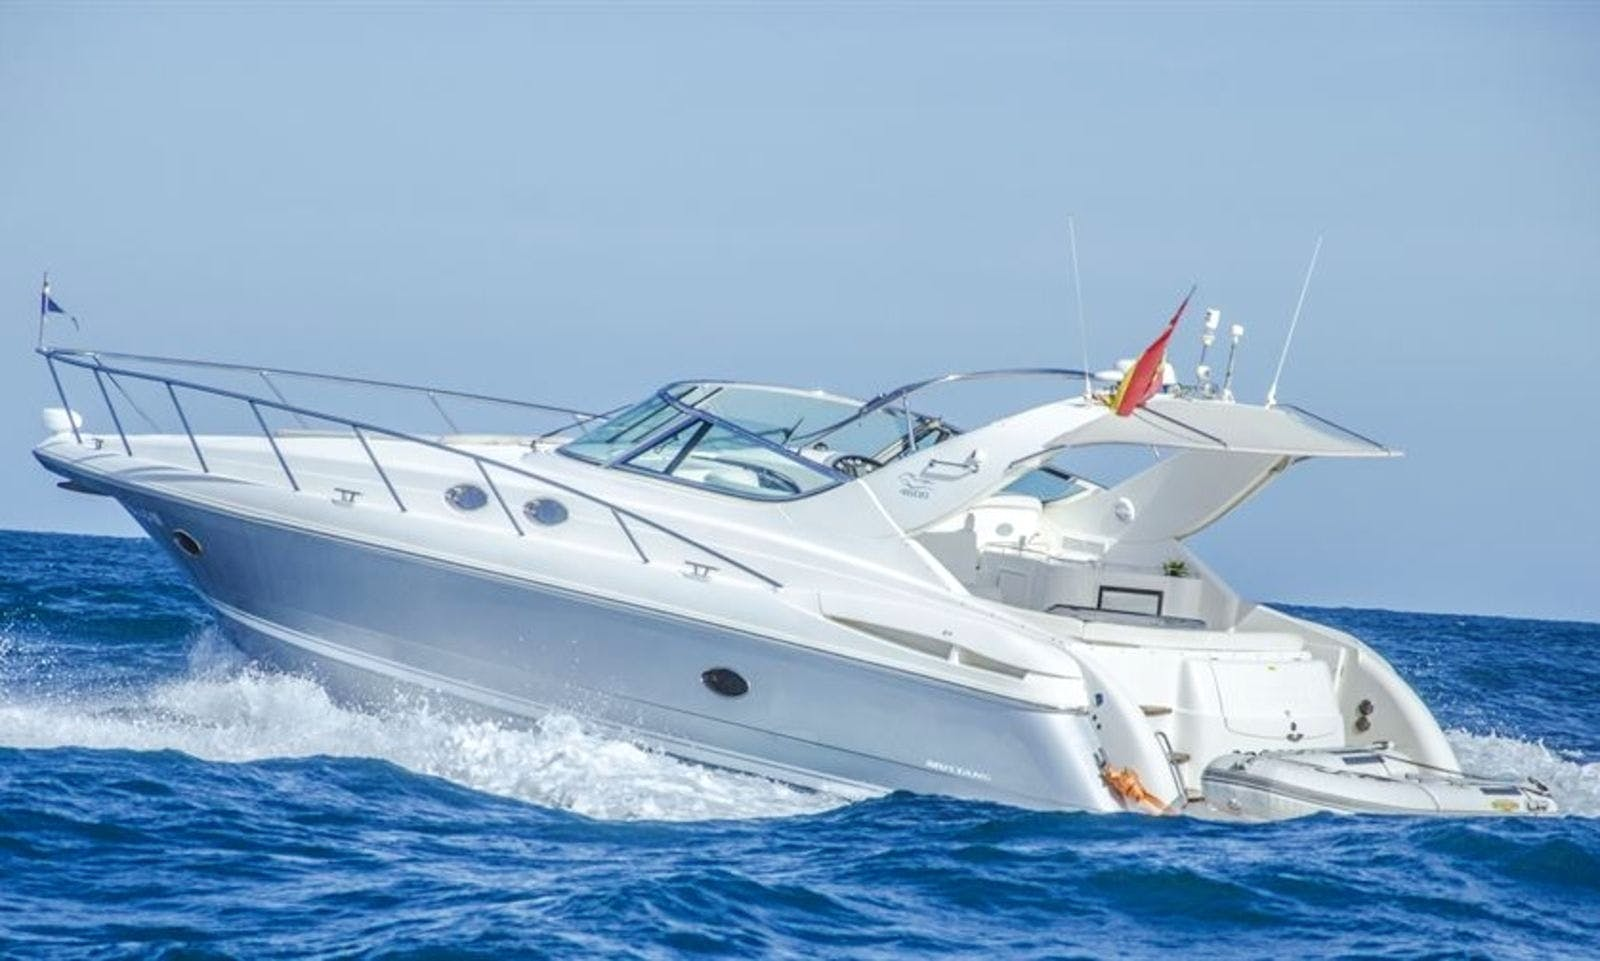 Luxurious Mustang 46 Motor Yacht Charter in Spain